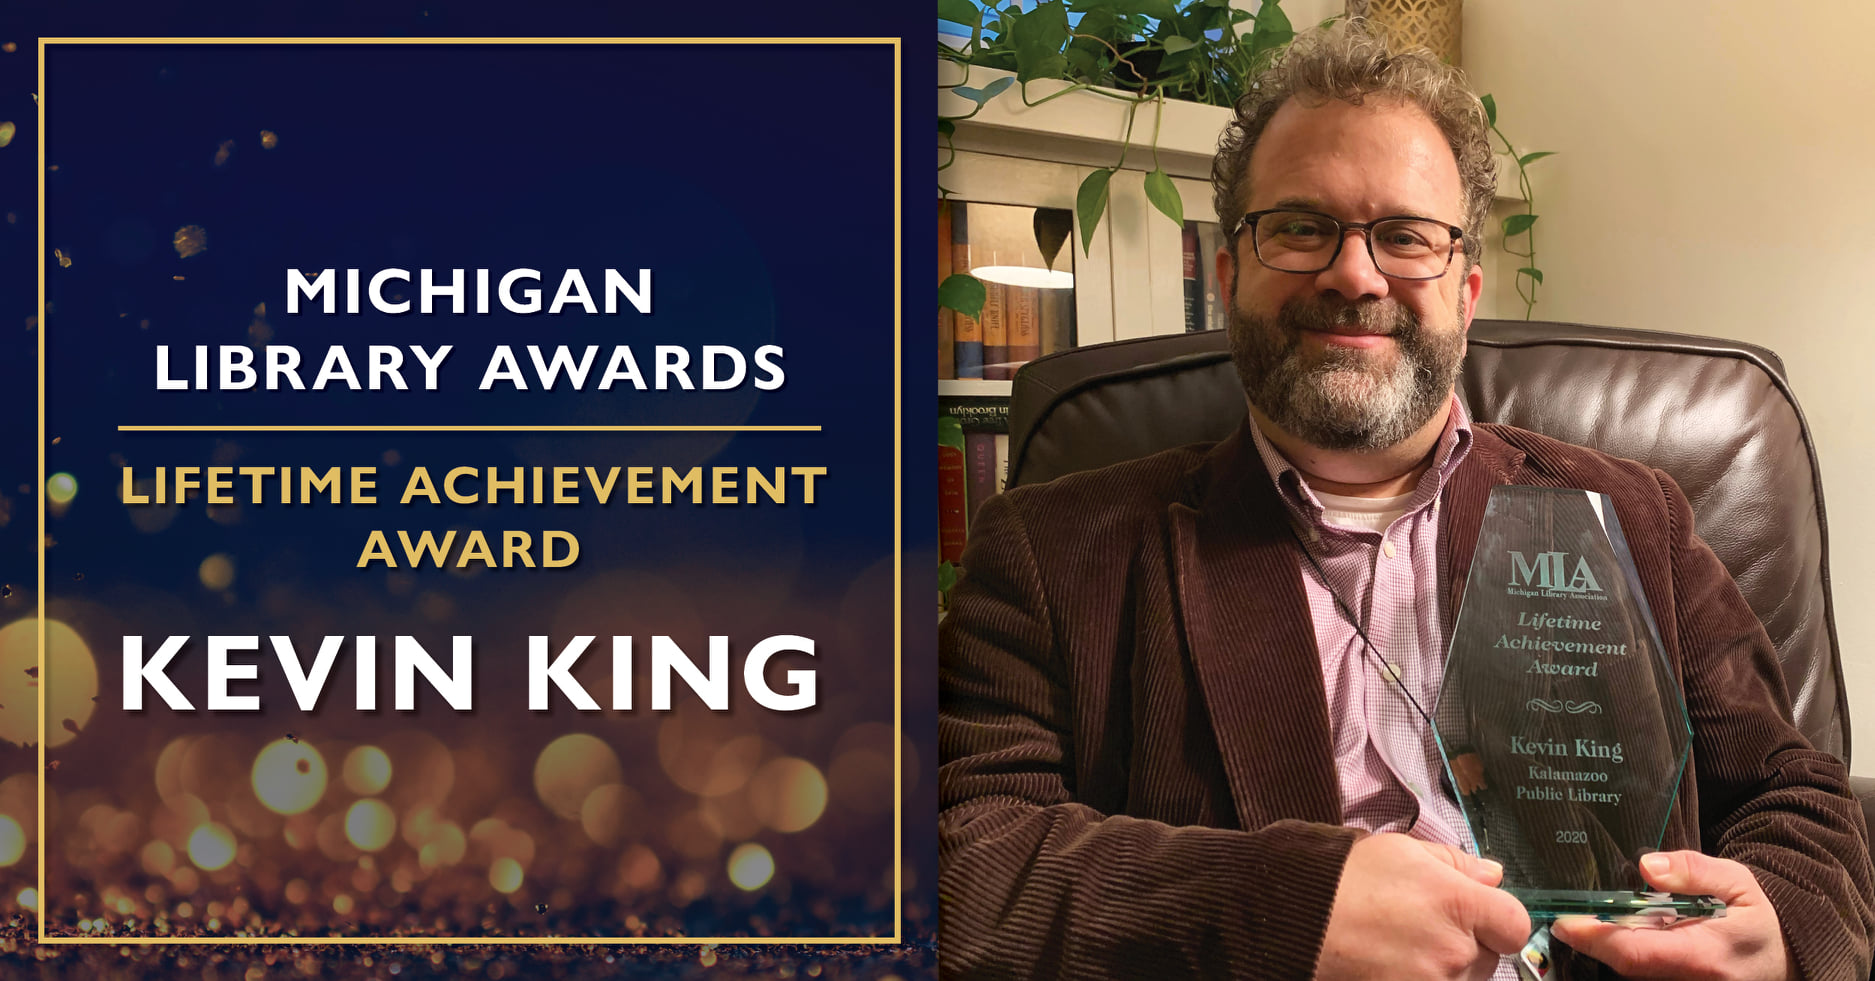 SIS alumnus Kevin King receives the Michigan Library Association's Lifetime Achievement Award